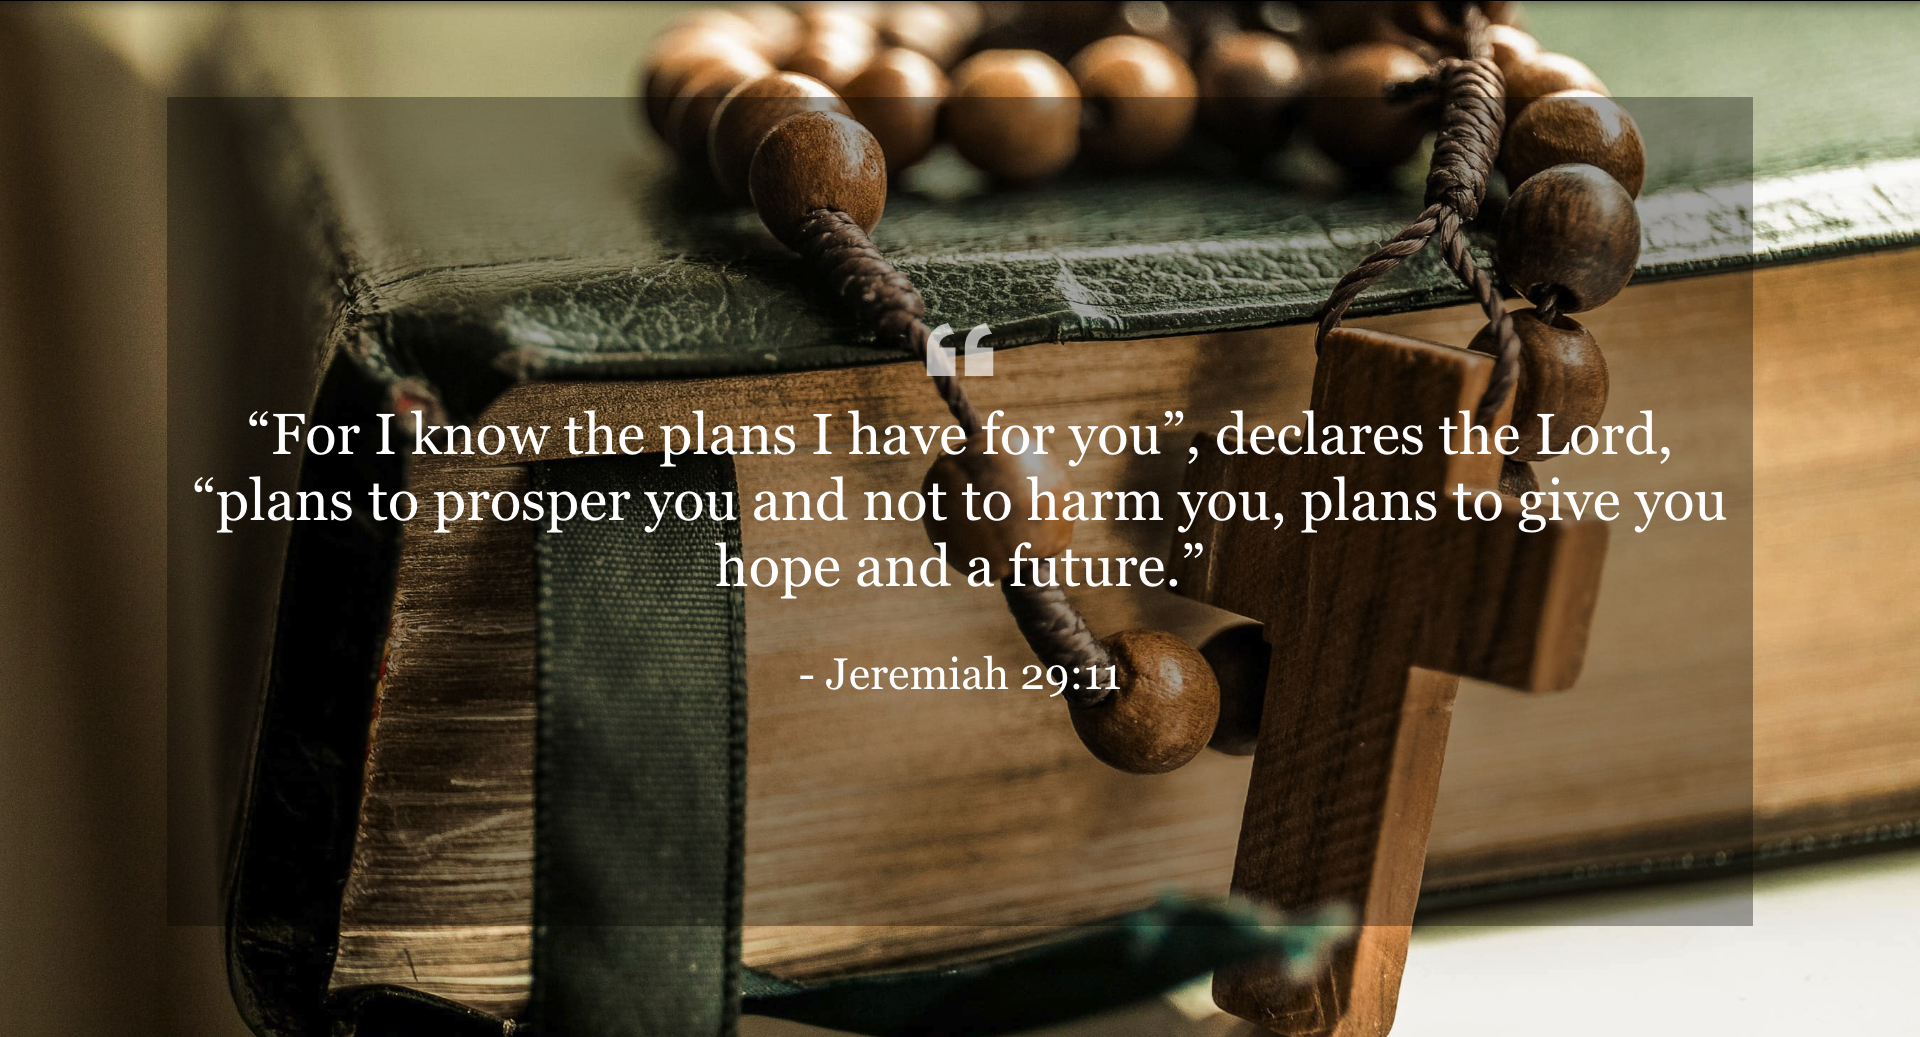 Bible Verse App screenshot 5